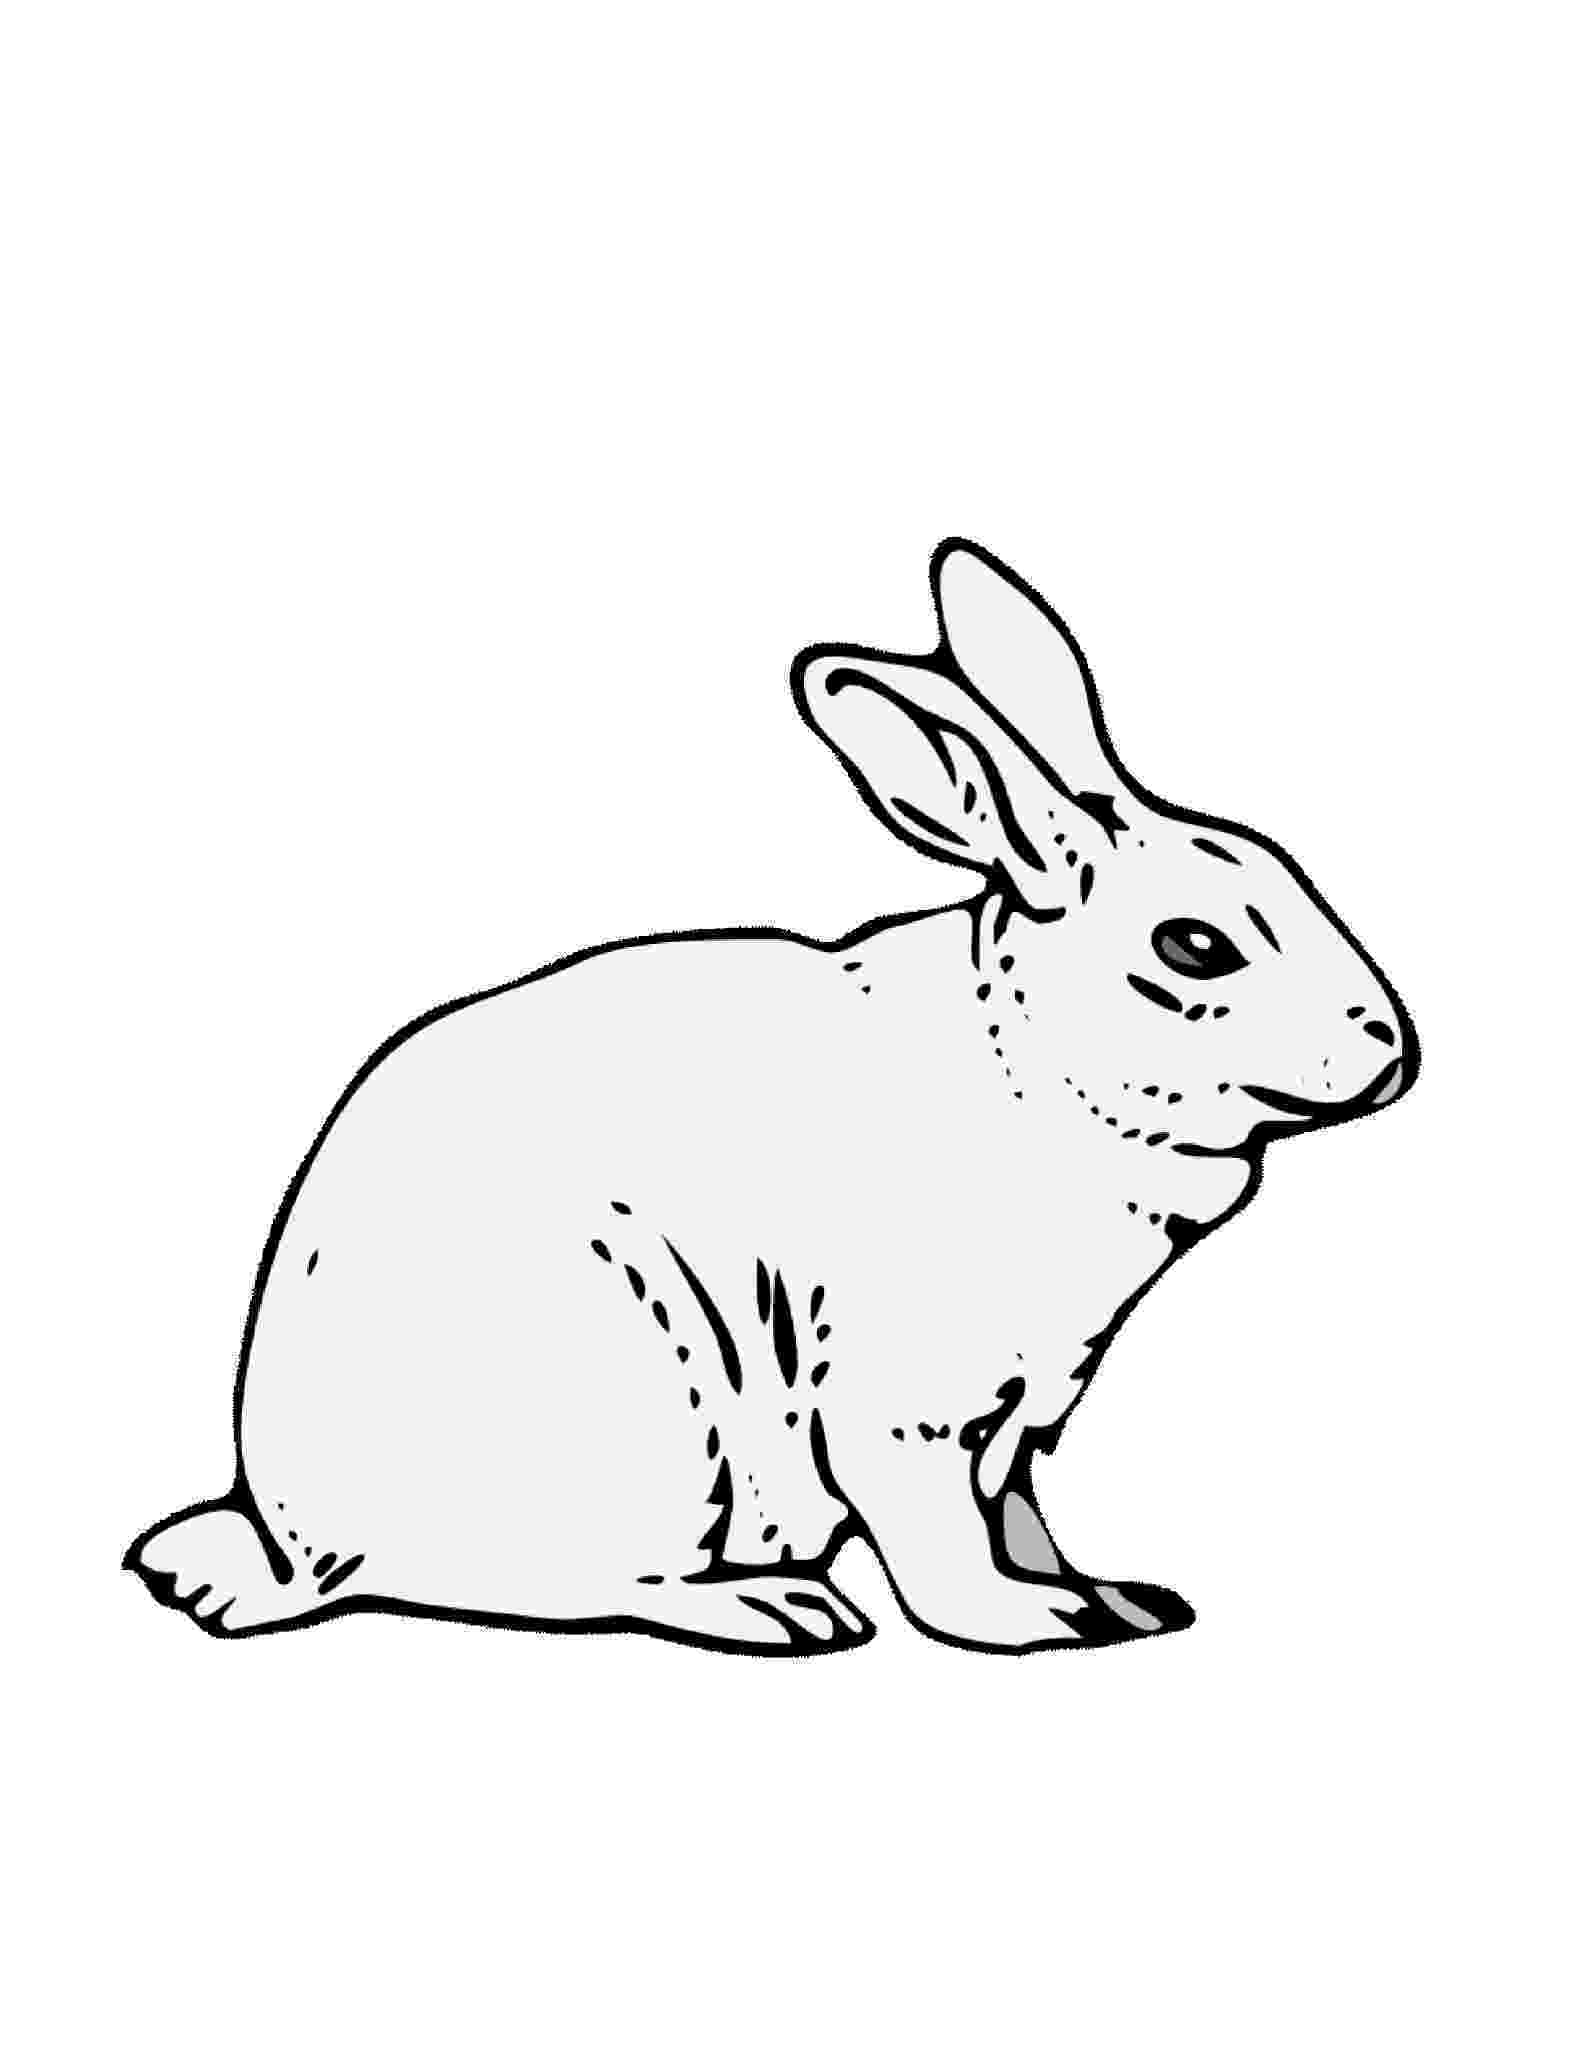 rabbit pictures to colour free printable rabbit coloring pages for kids to pictures colour rabbit